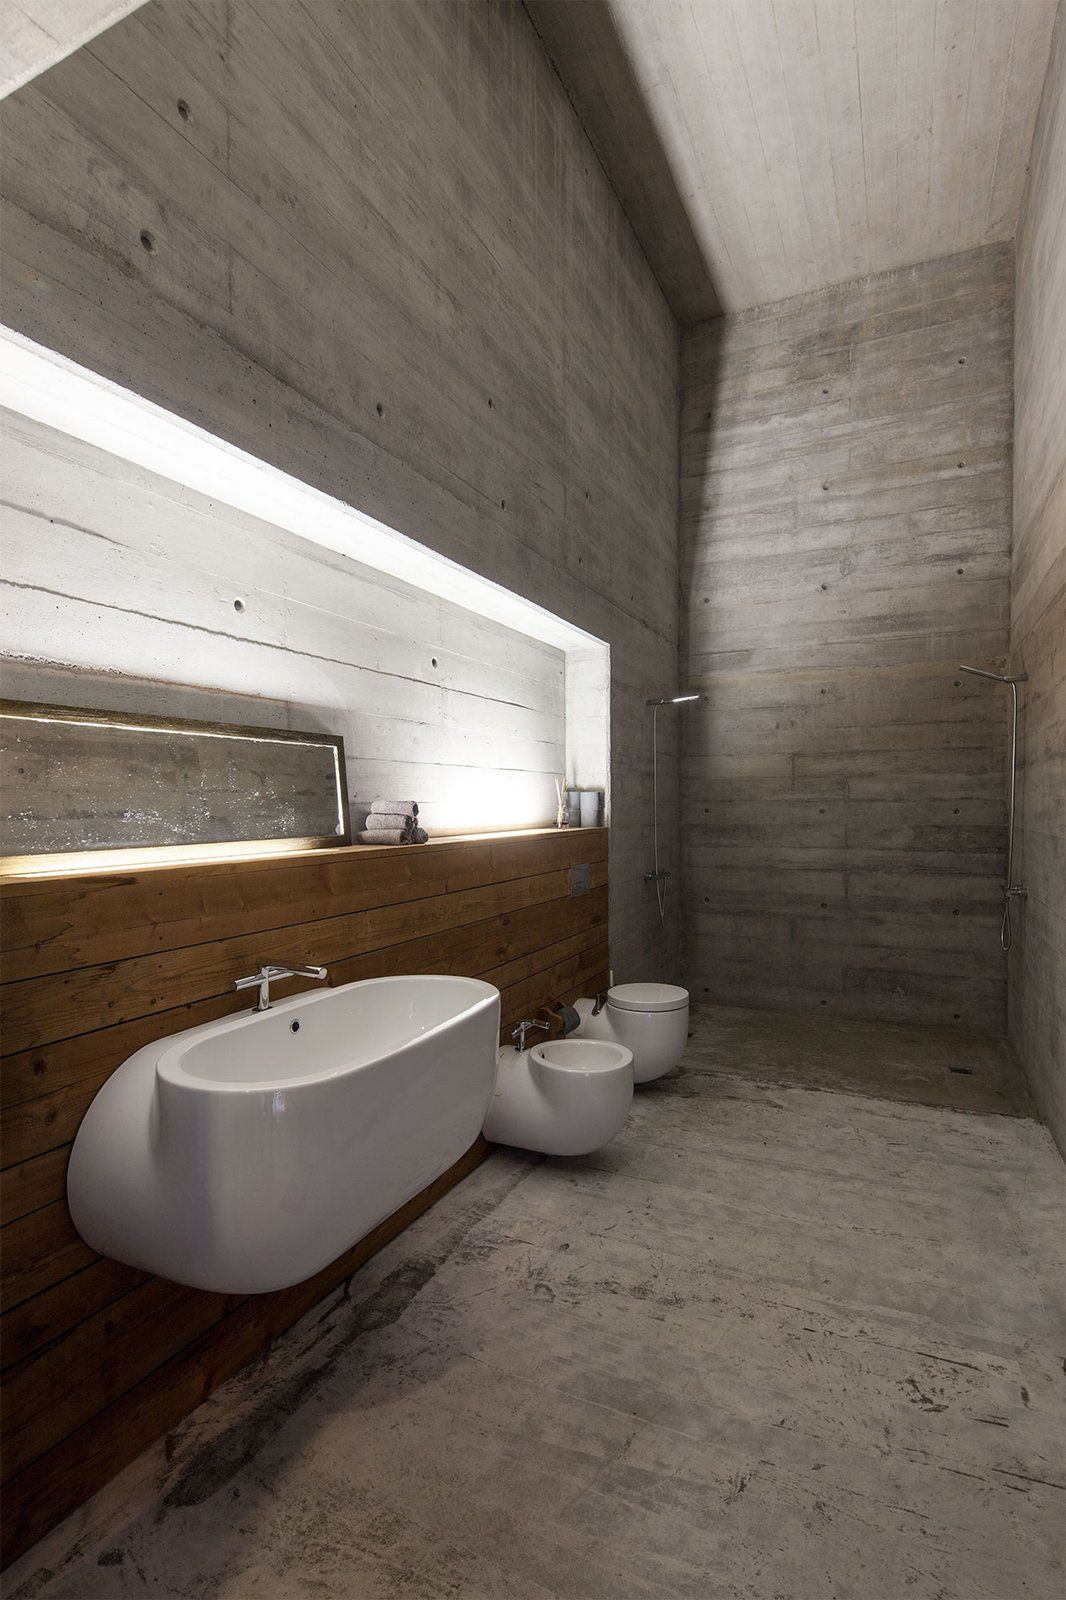 The lighting throughout the spaces is always meant to feel natural, without highlighting the actual fixtures